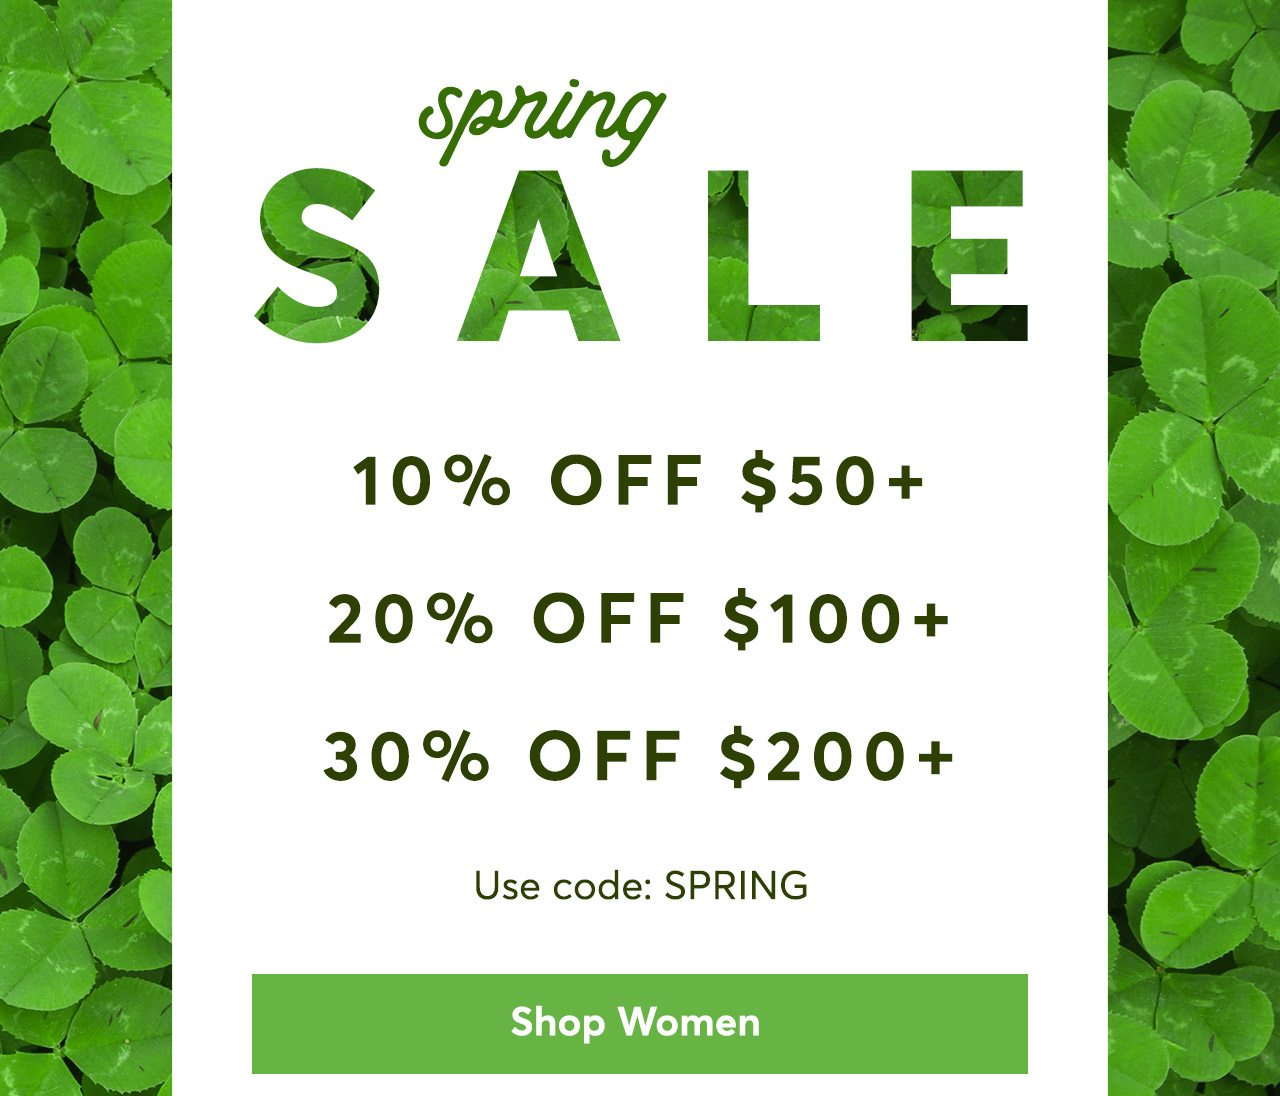 Spring Sale: 10% off $50+, 20% off $100+, 30% off $200 with code SPRING. Shop Women